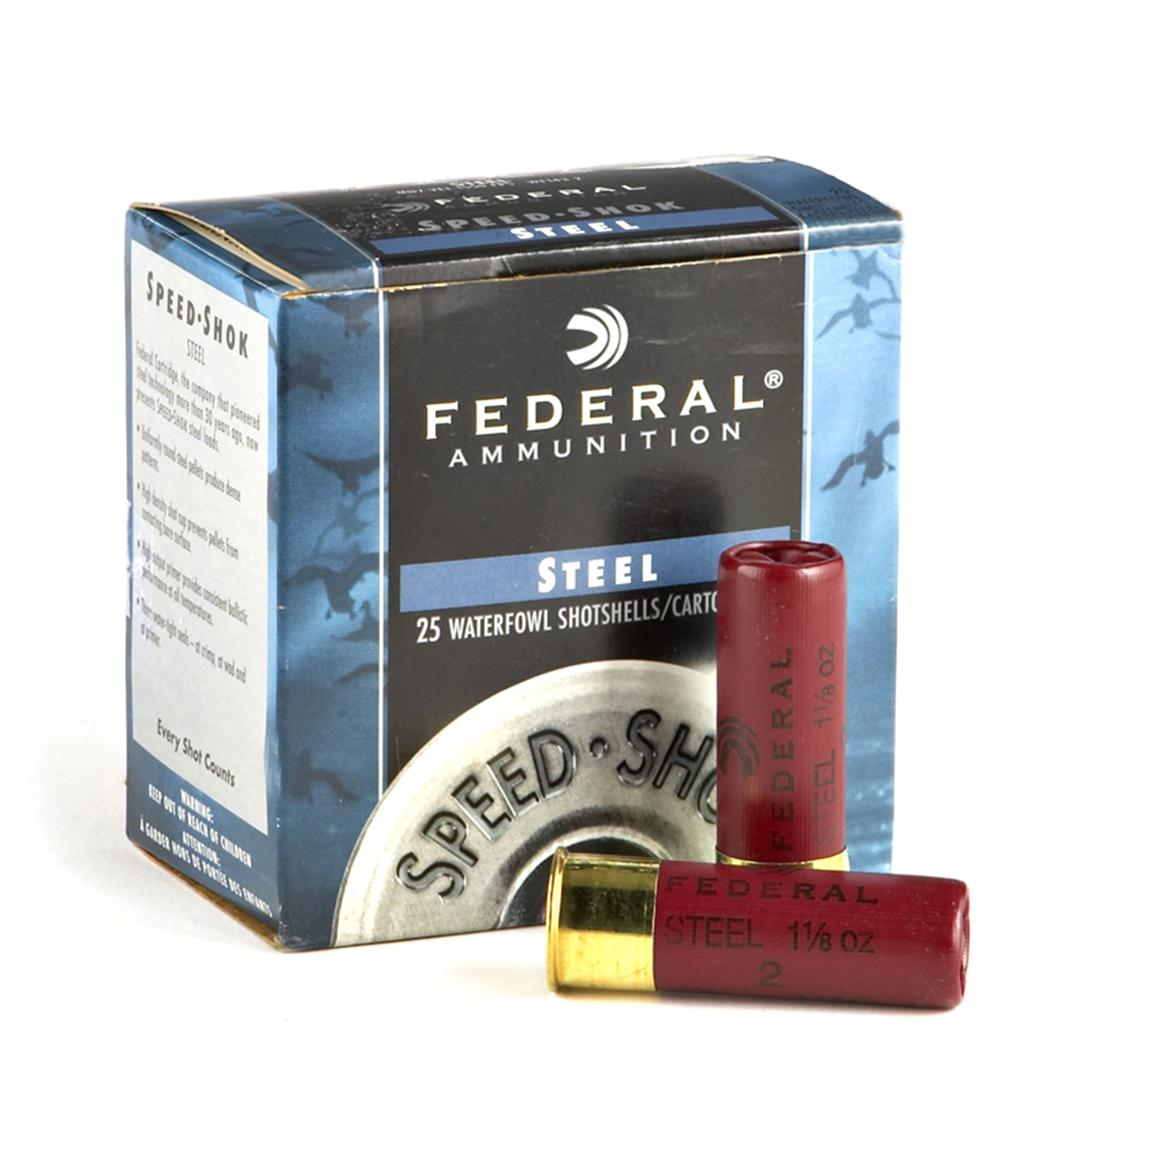 "Federal Speed Shok, 12 Gauge, 3"", 1 1/8 oz., Steel, 25 Rounds"